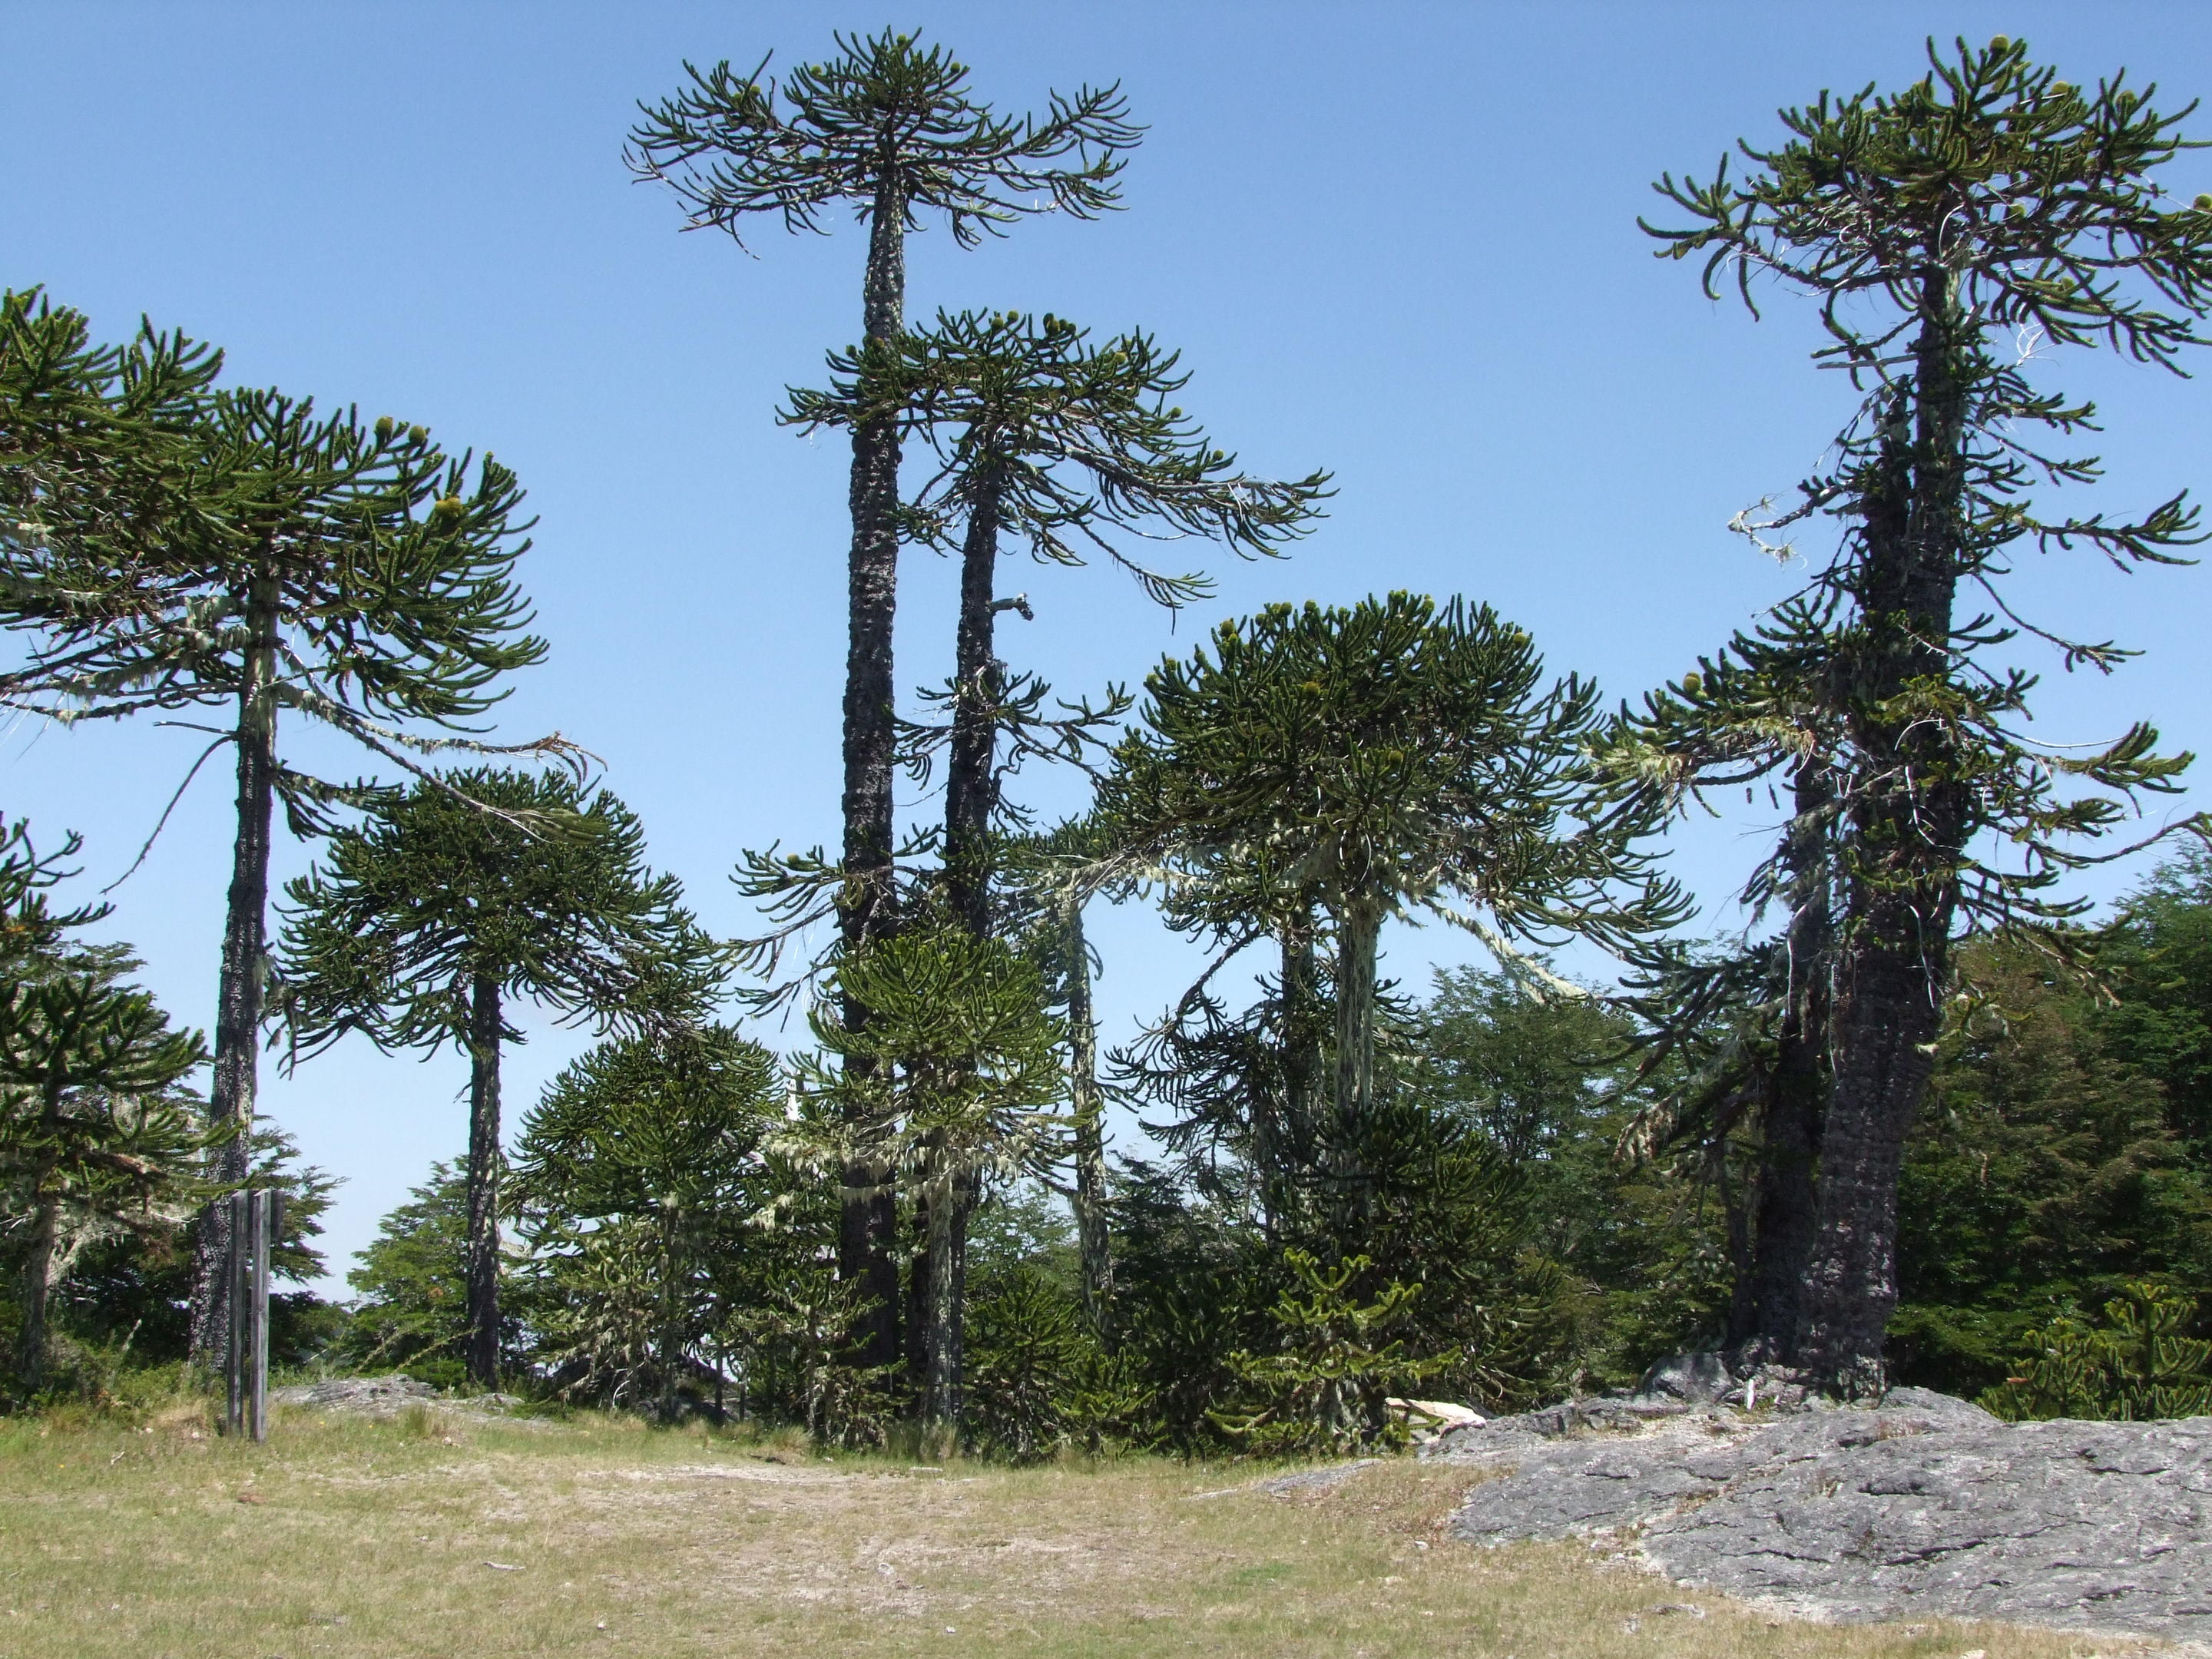 Giant examples of the monkey puzzle in its natural habitat in Chile. It is now an endangered species.